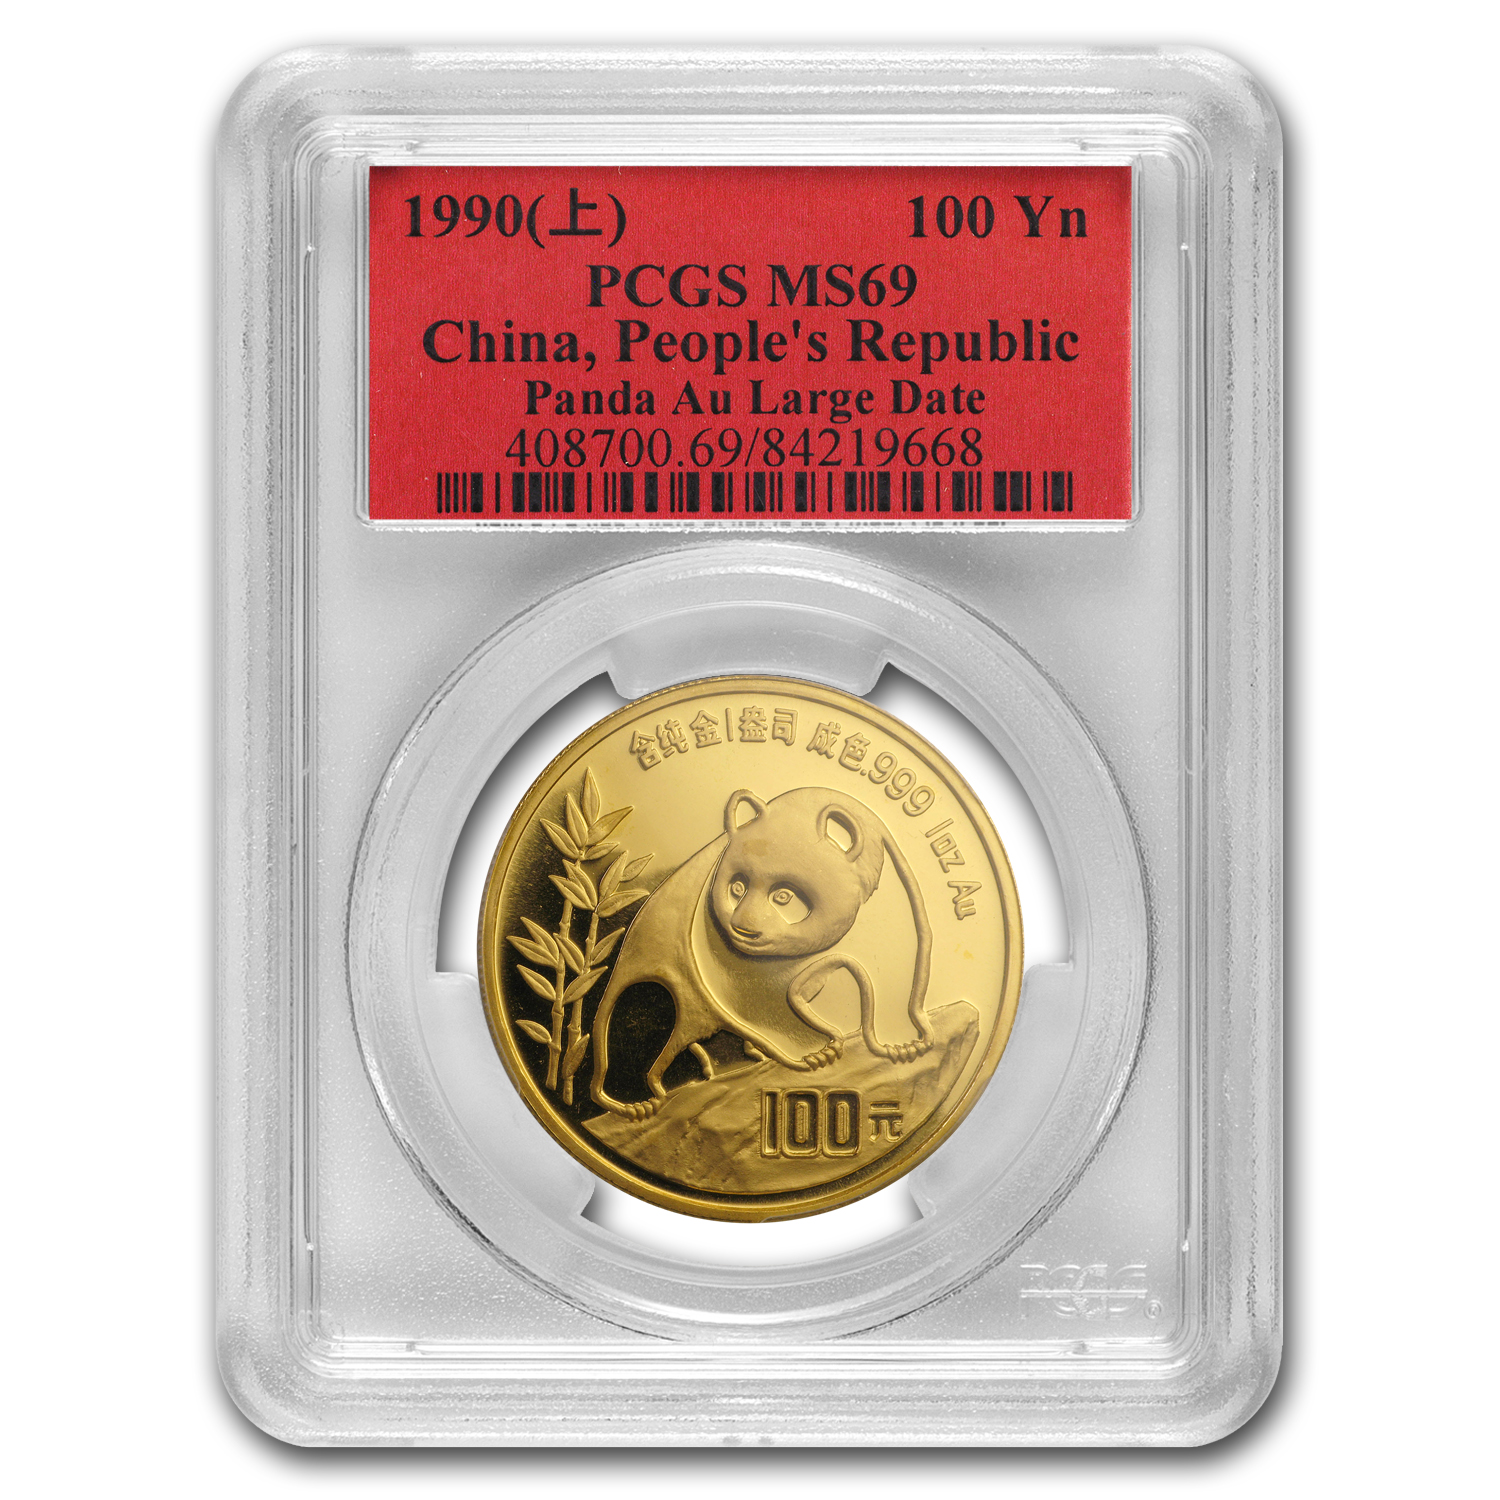 1990 1 oz Gold Chinese Panda MS-69 PCGS - Large Date